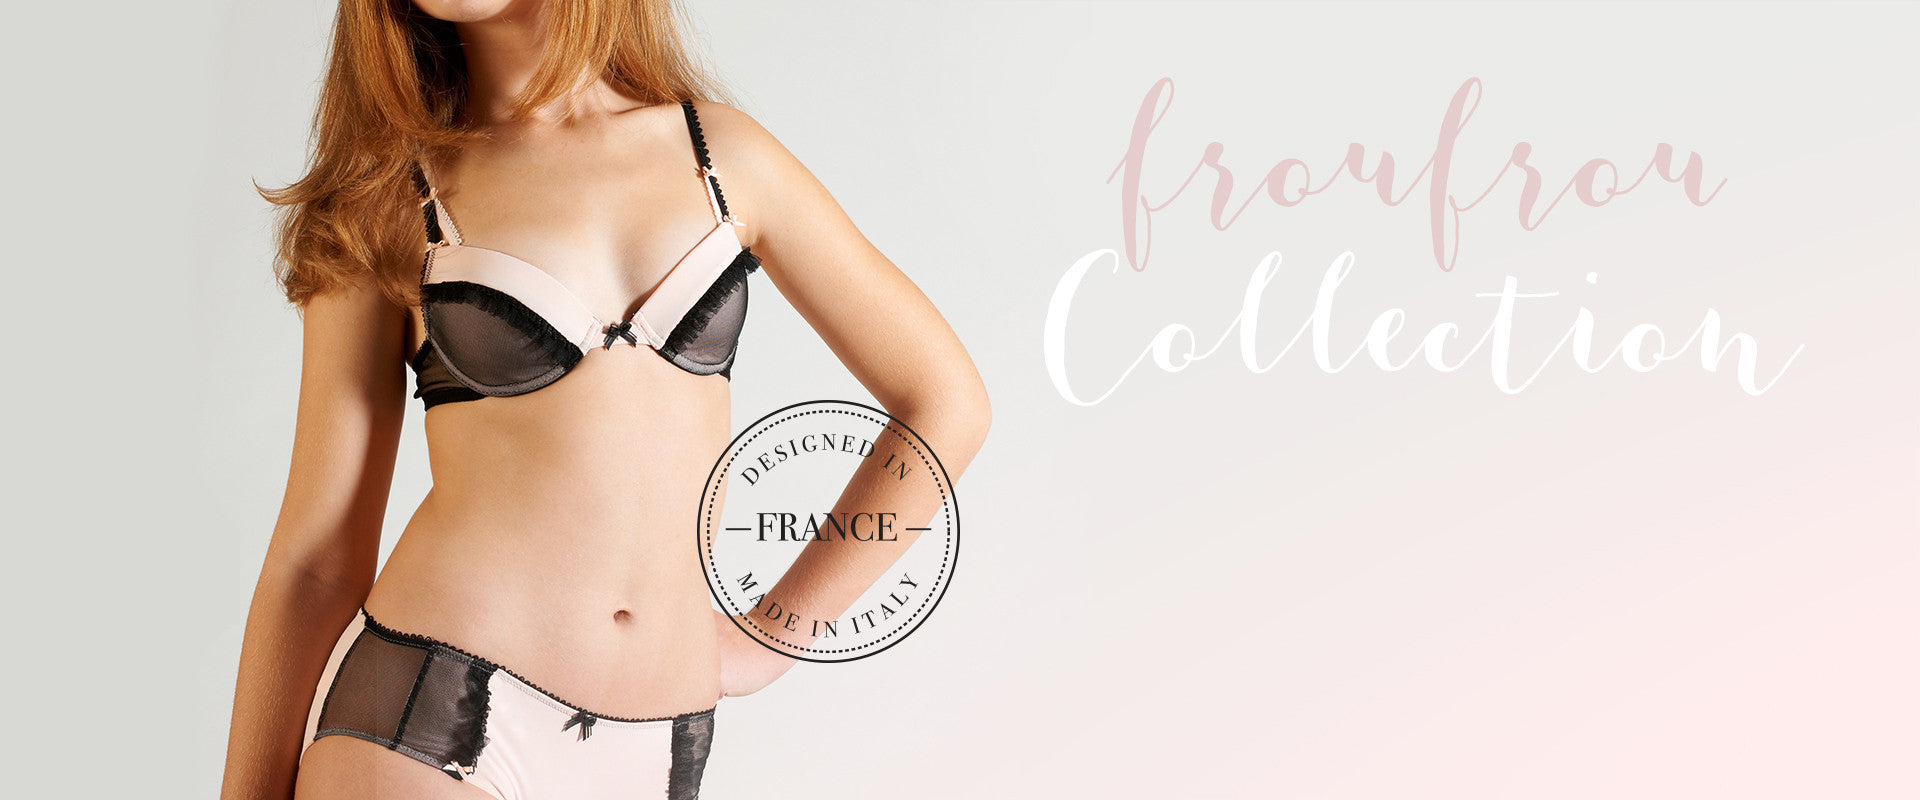 Caracoteen - Frou Frou young girl underwear collection